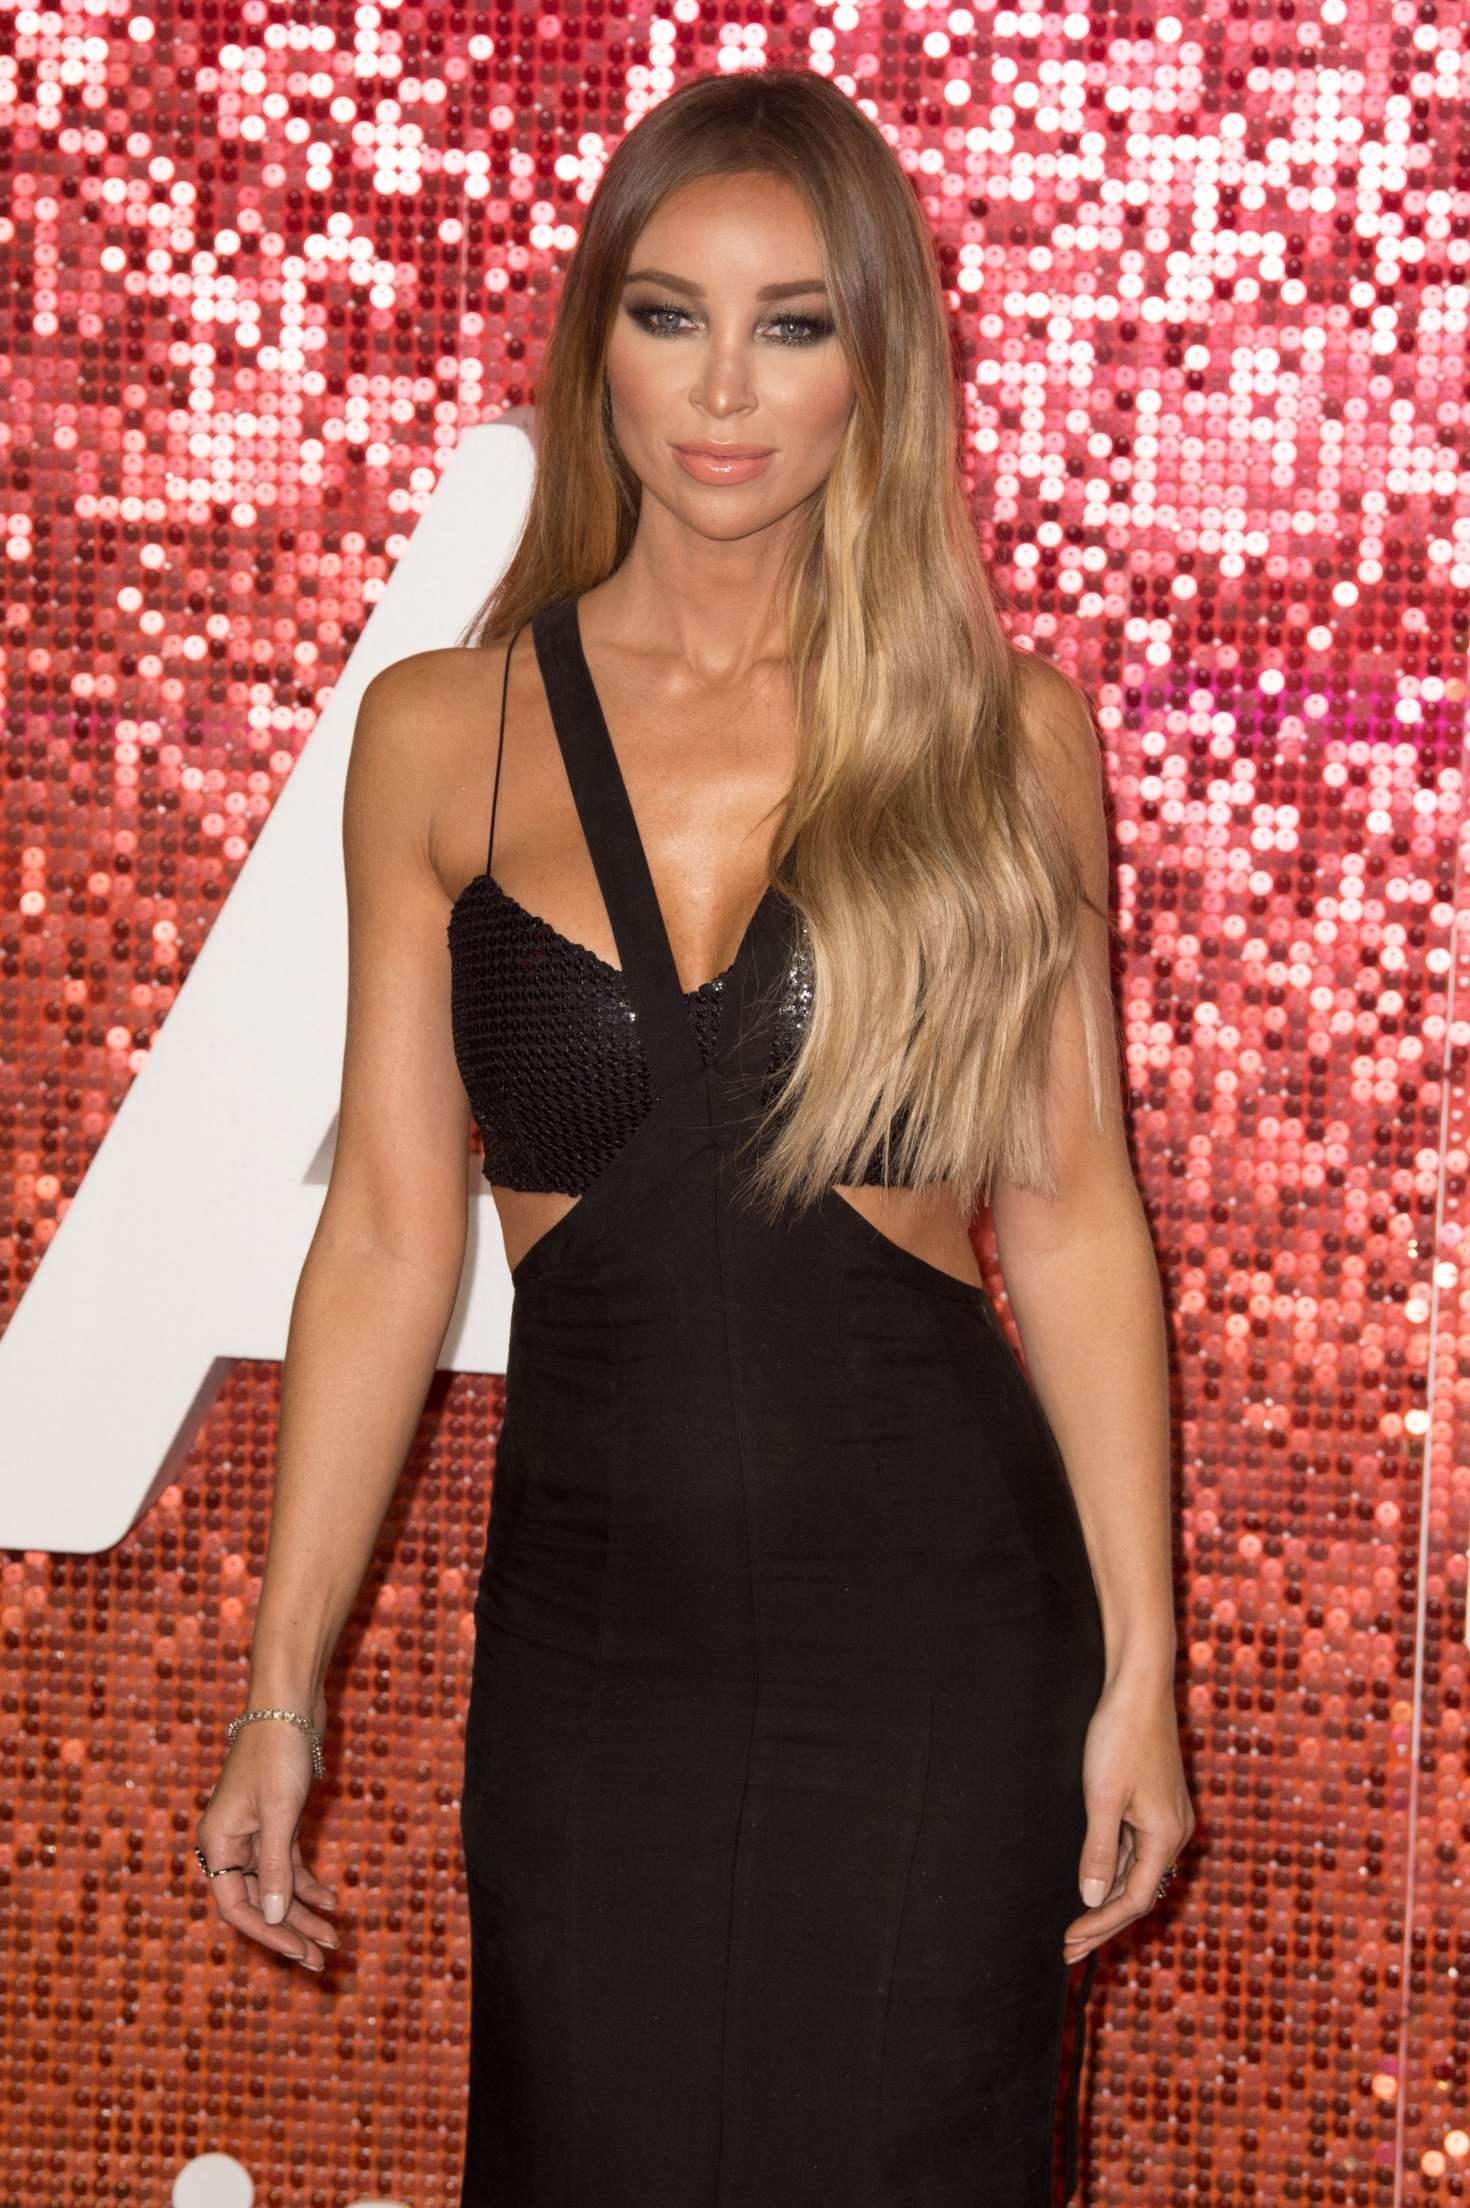 Lauren Pope nudes (73 foto) Hacked, YouTube, lingerie